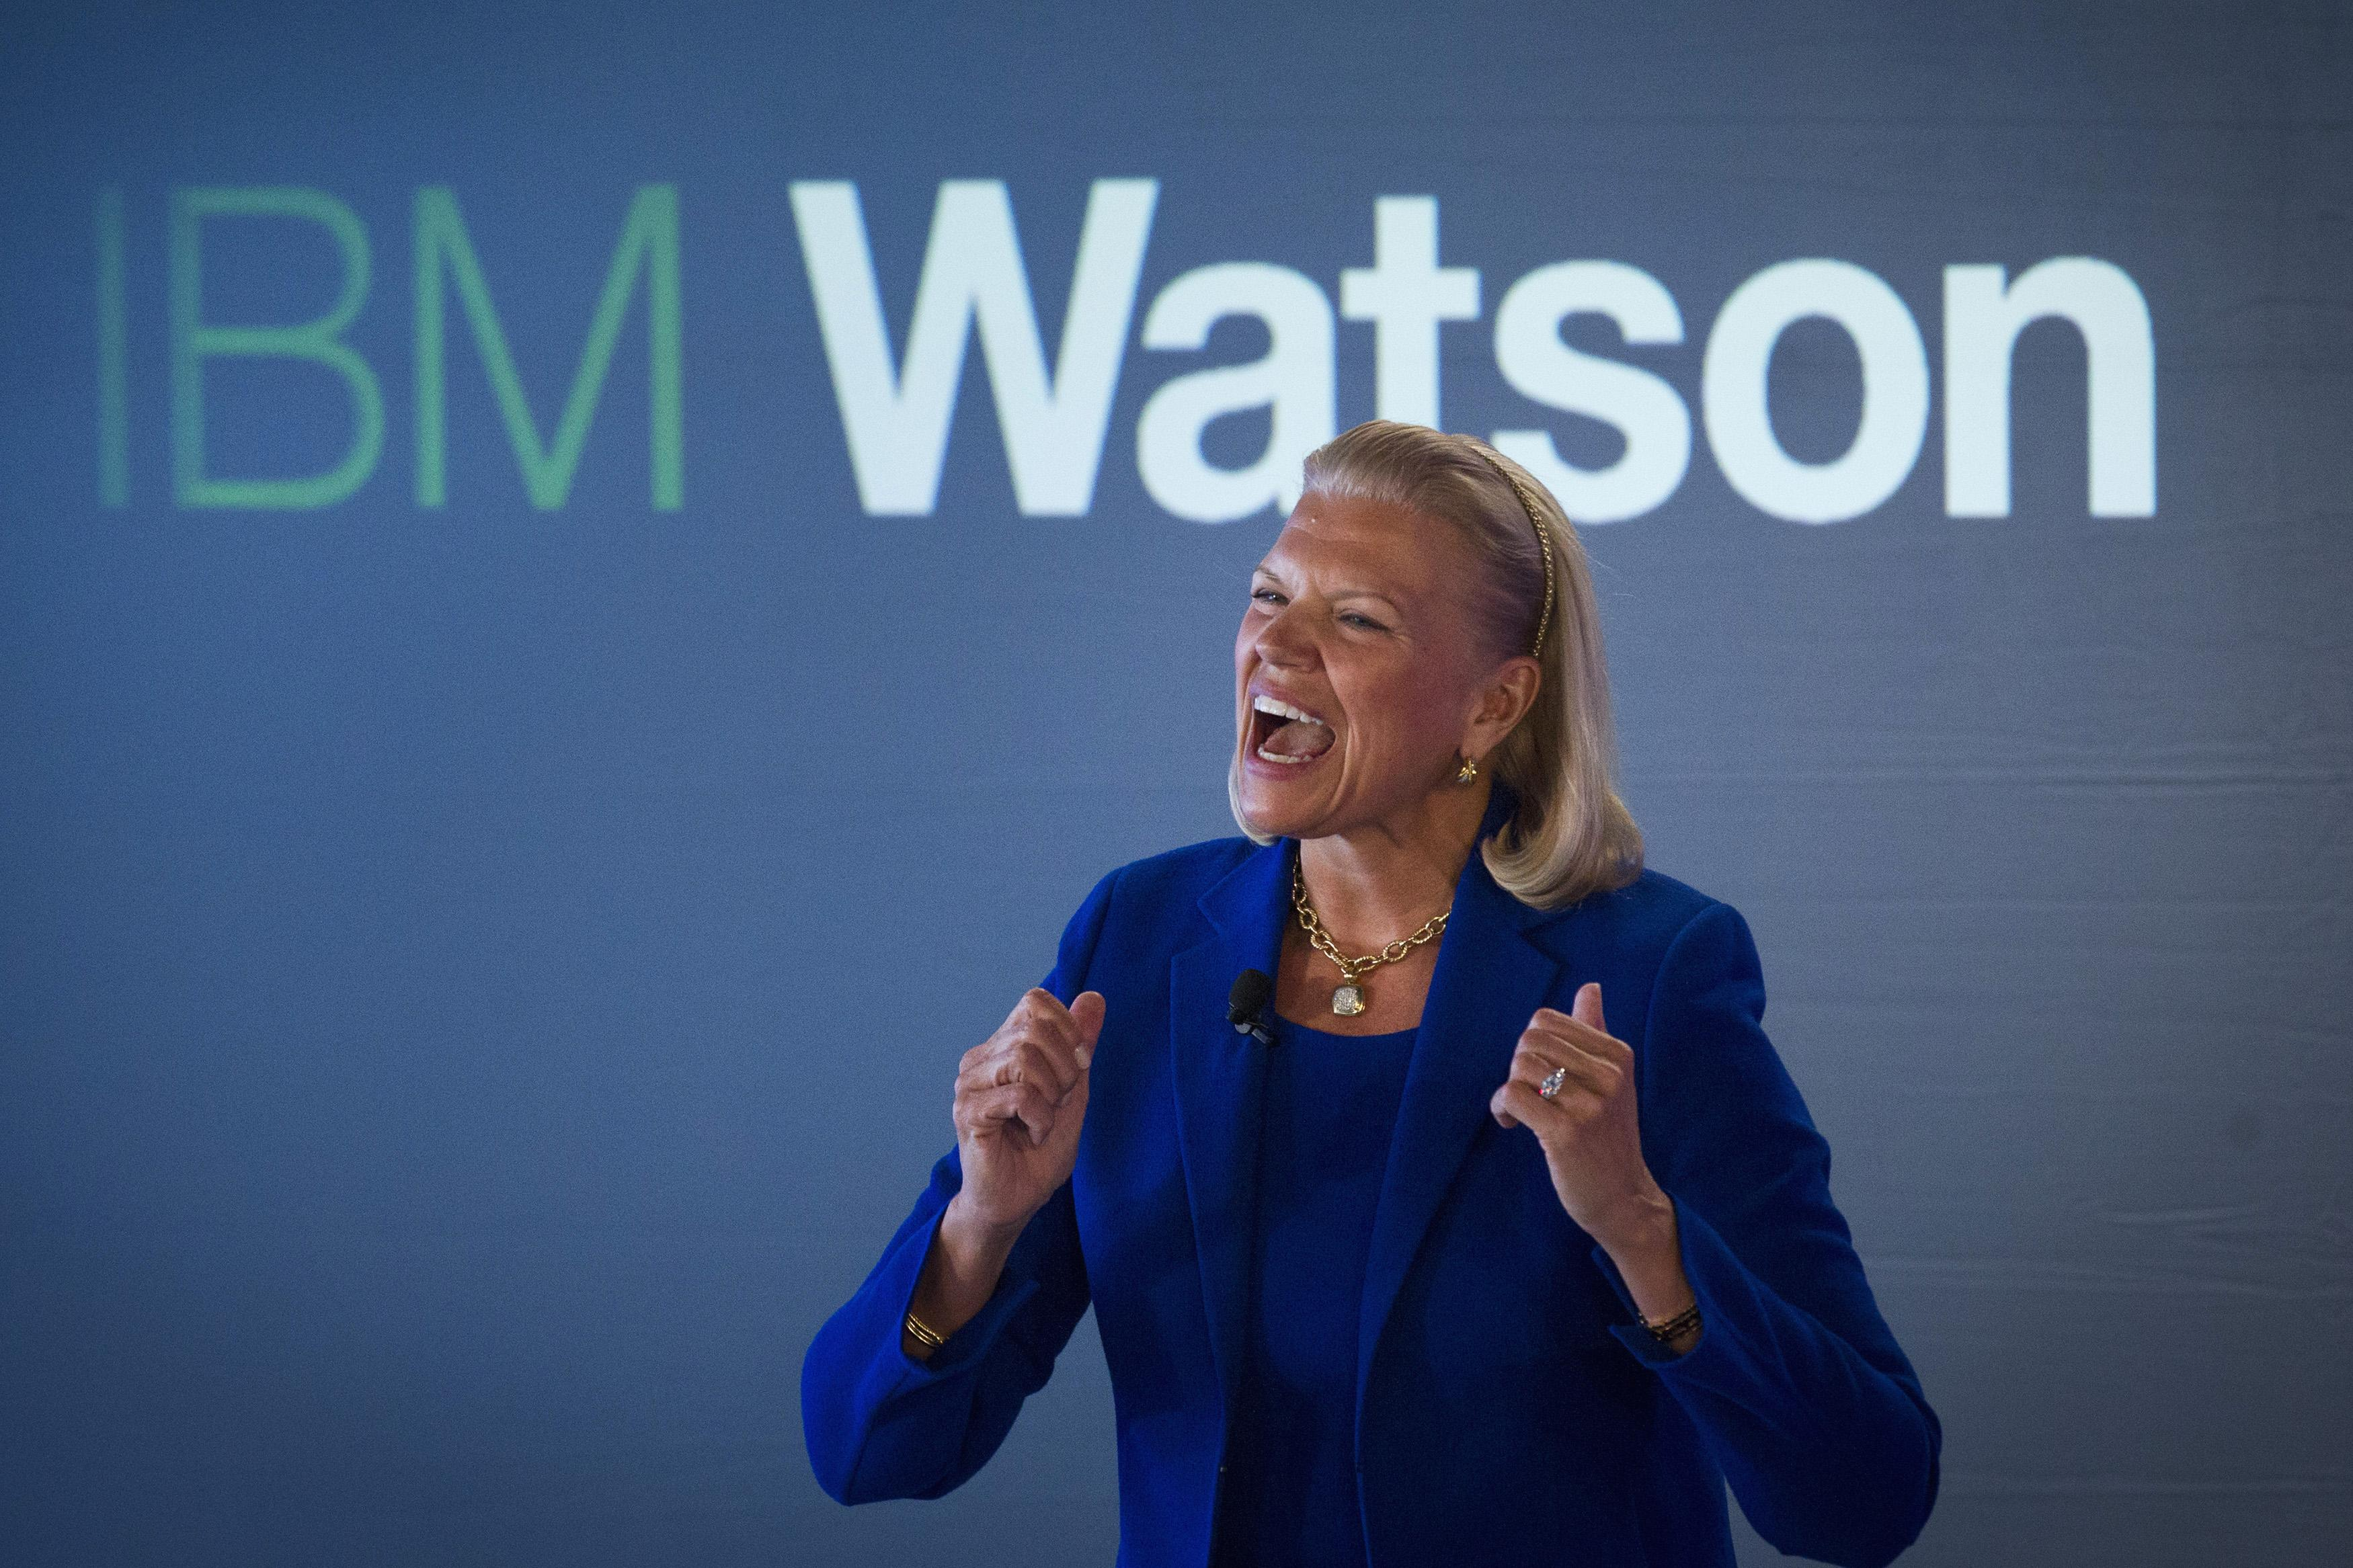 IBM Rometty